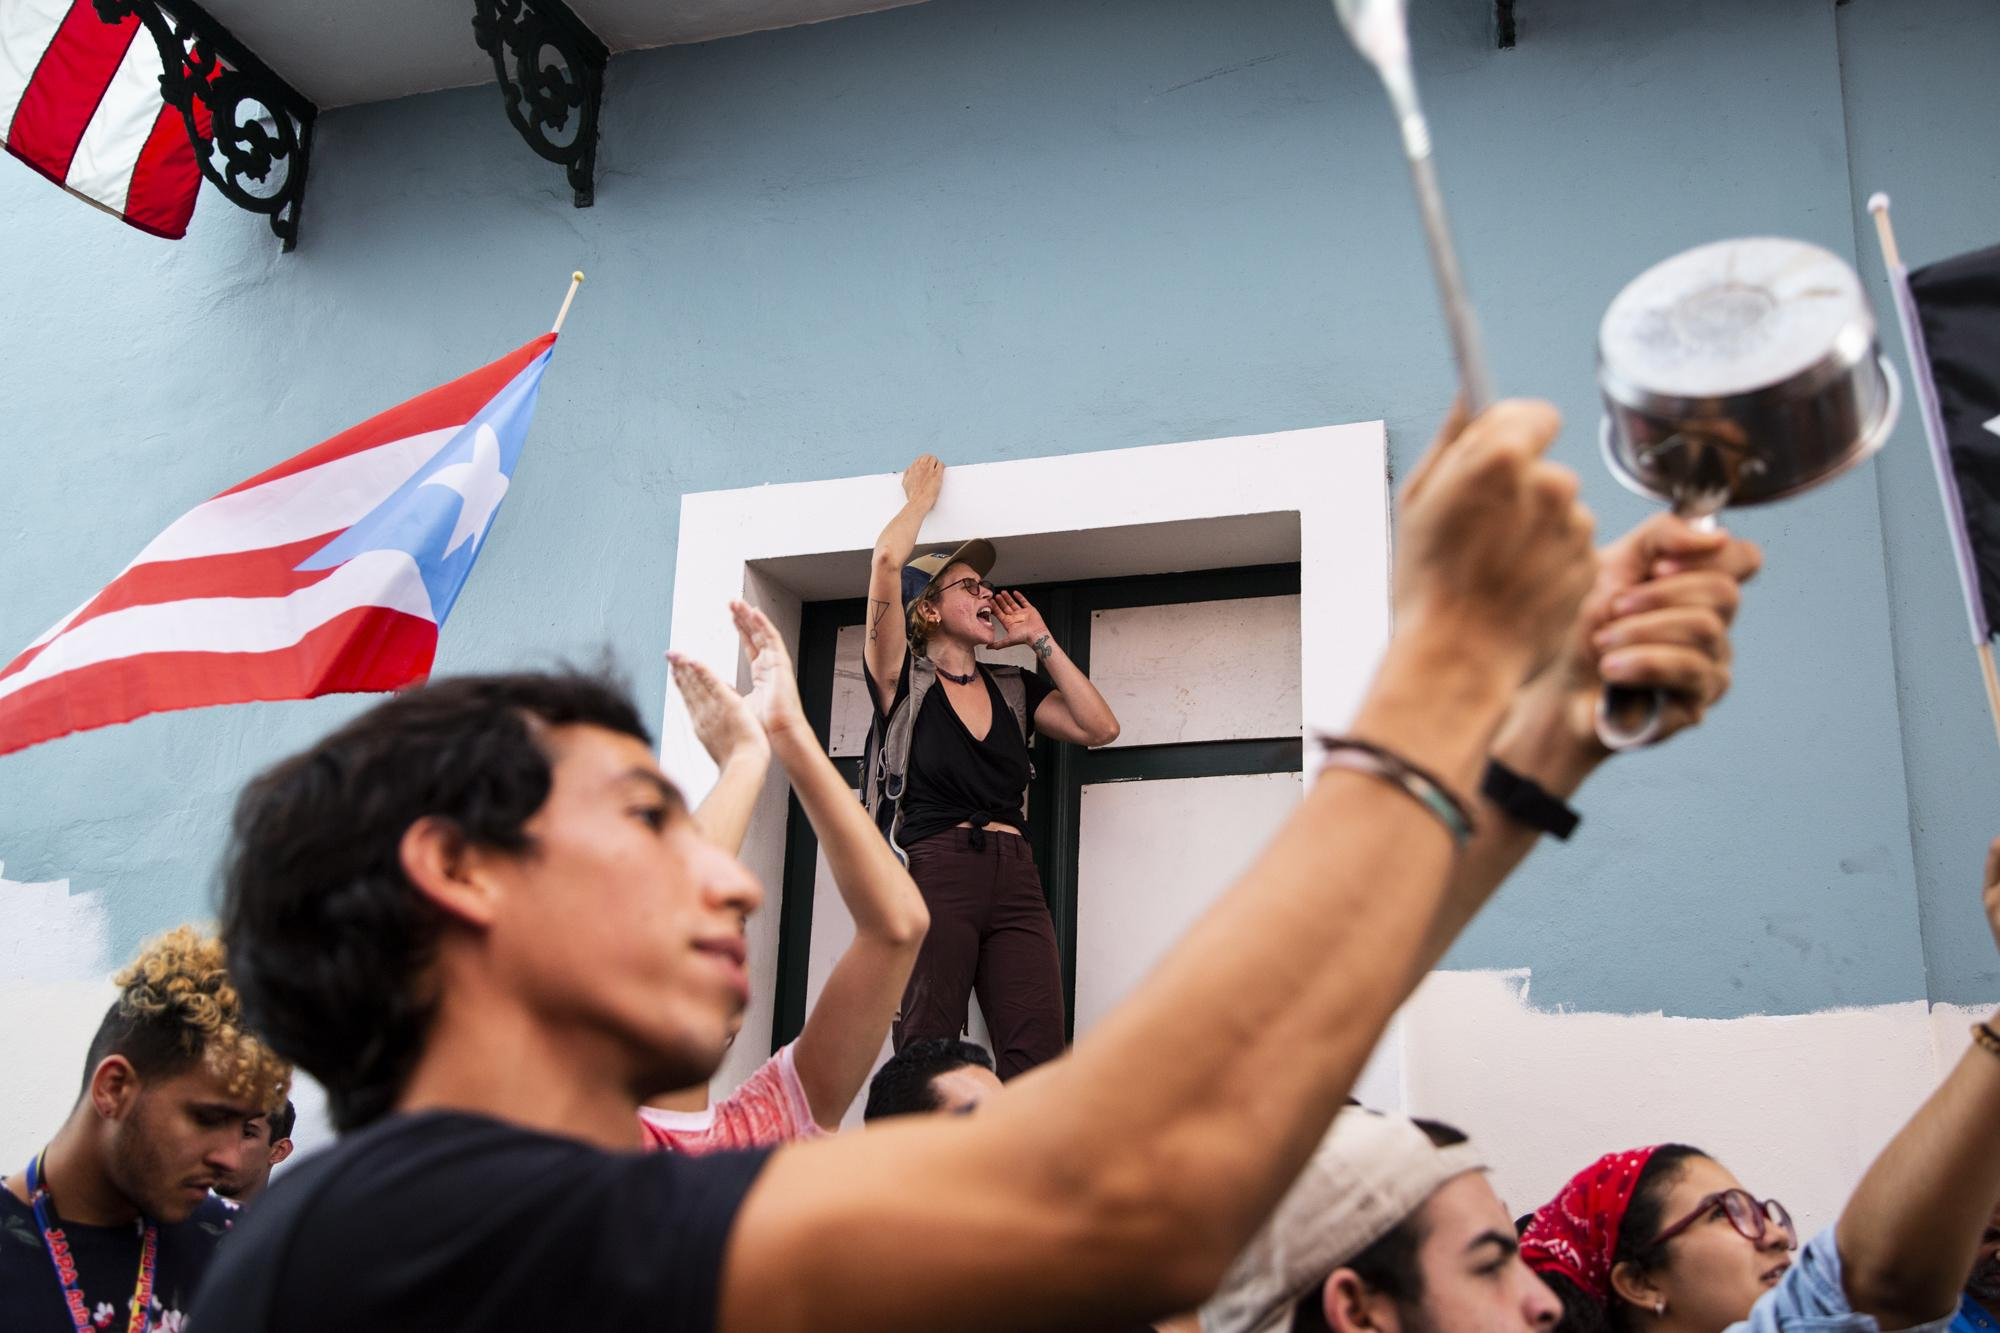 People gather to protest outside the governor's mansion in San Juan, P.R., on Jan. 20, 2020. On Saturday a storage with aid from hurricane Maria was found with undistributed supplies in Ponce, an area affected by the recent earthquakes. (Erika P. Rodriguez for The New York Times)